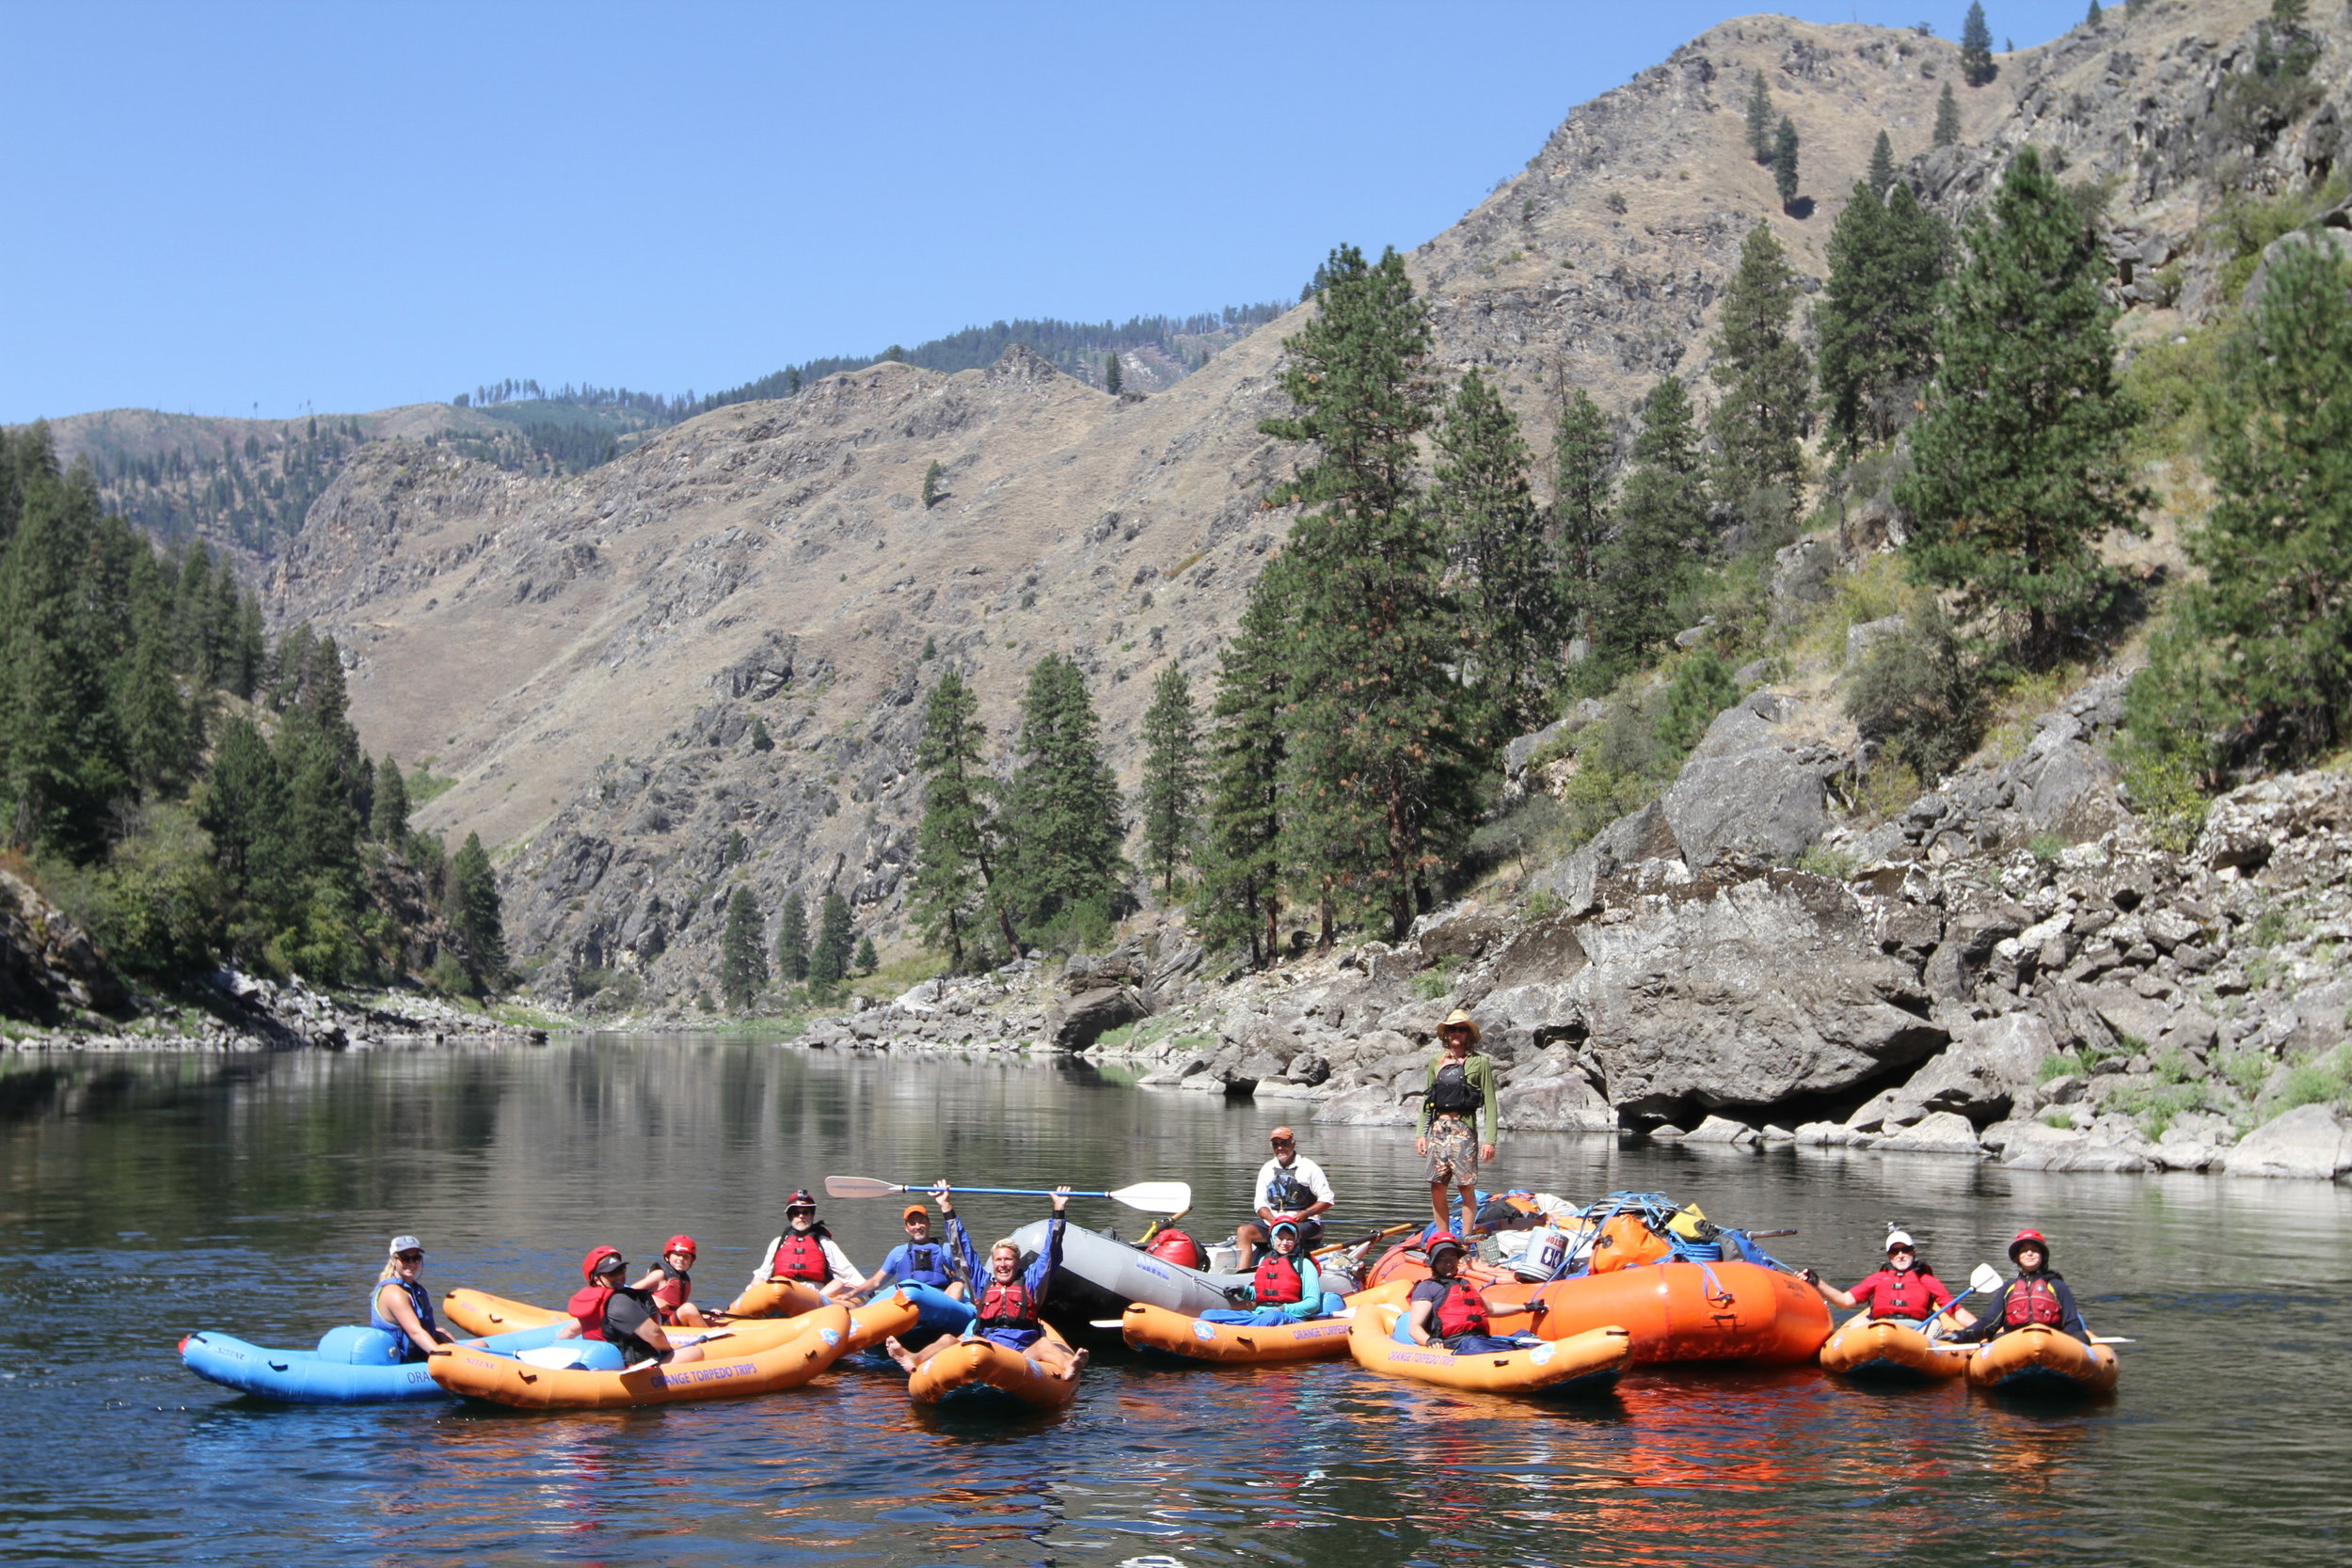 Group ending trip on the Main Salmon River